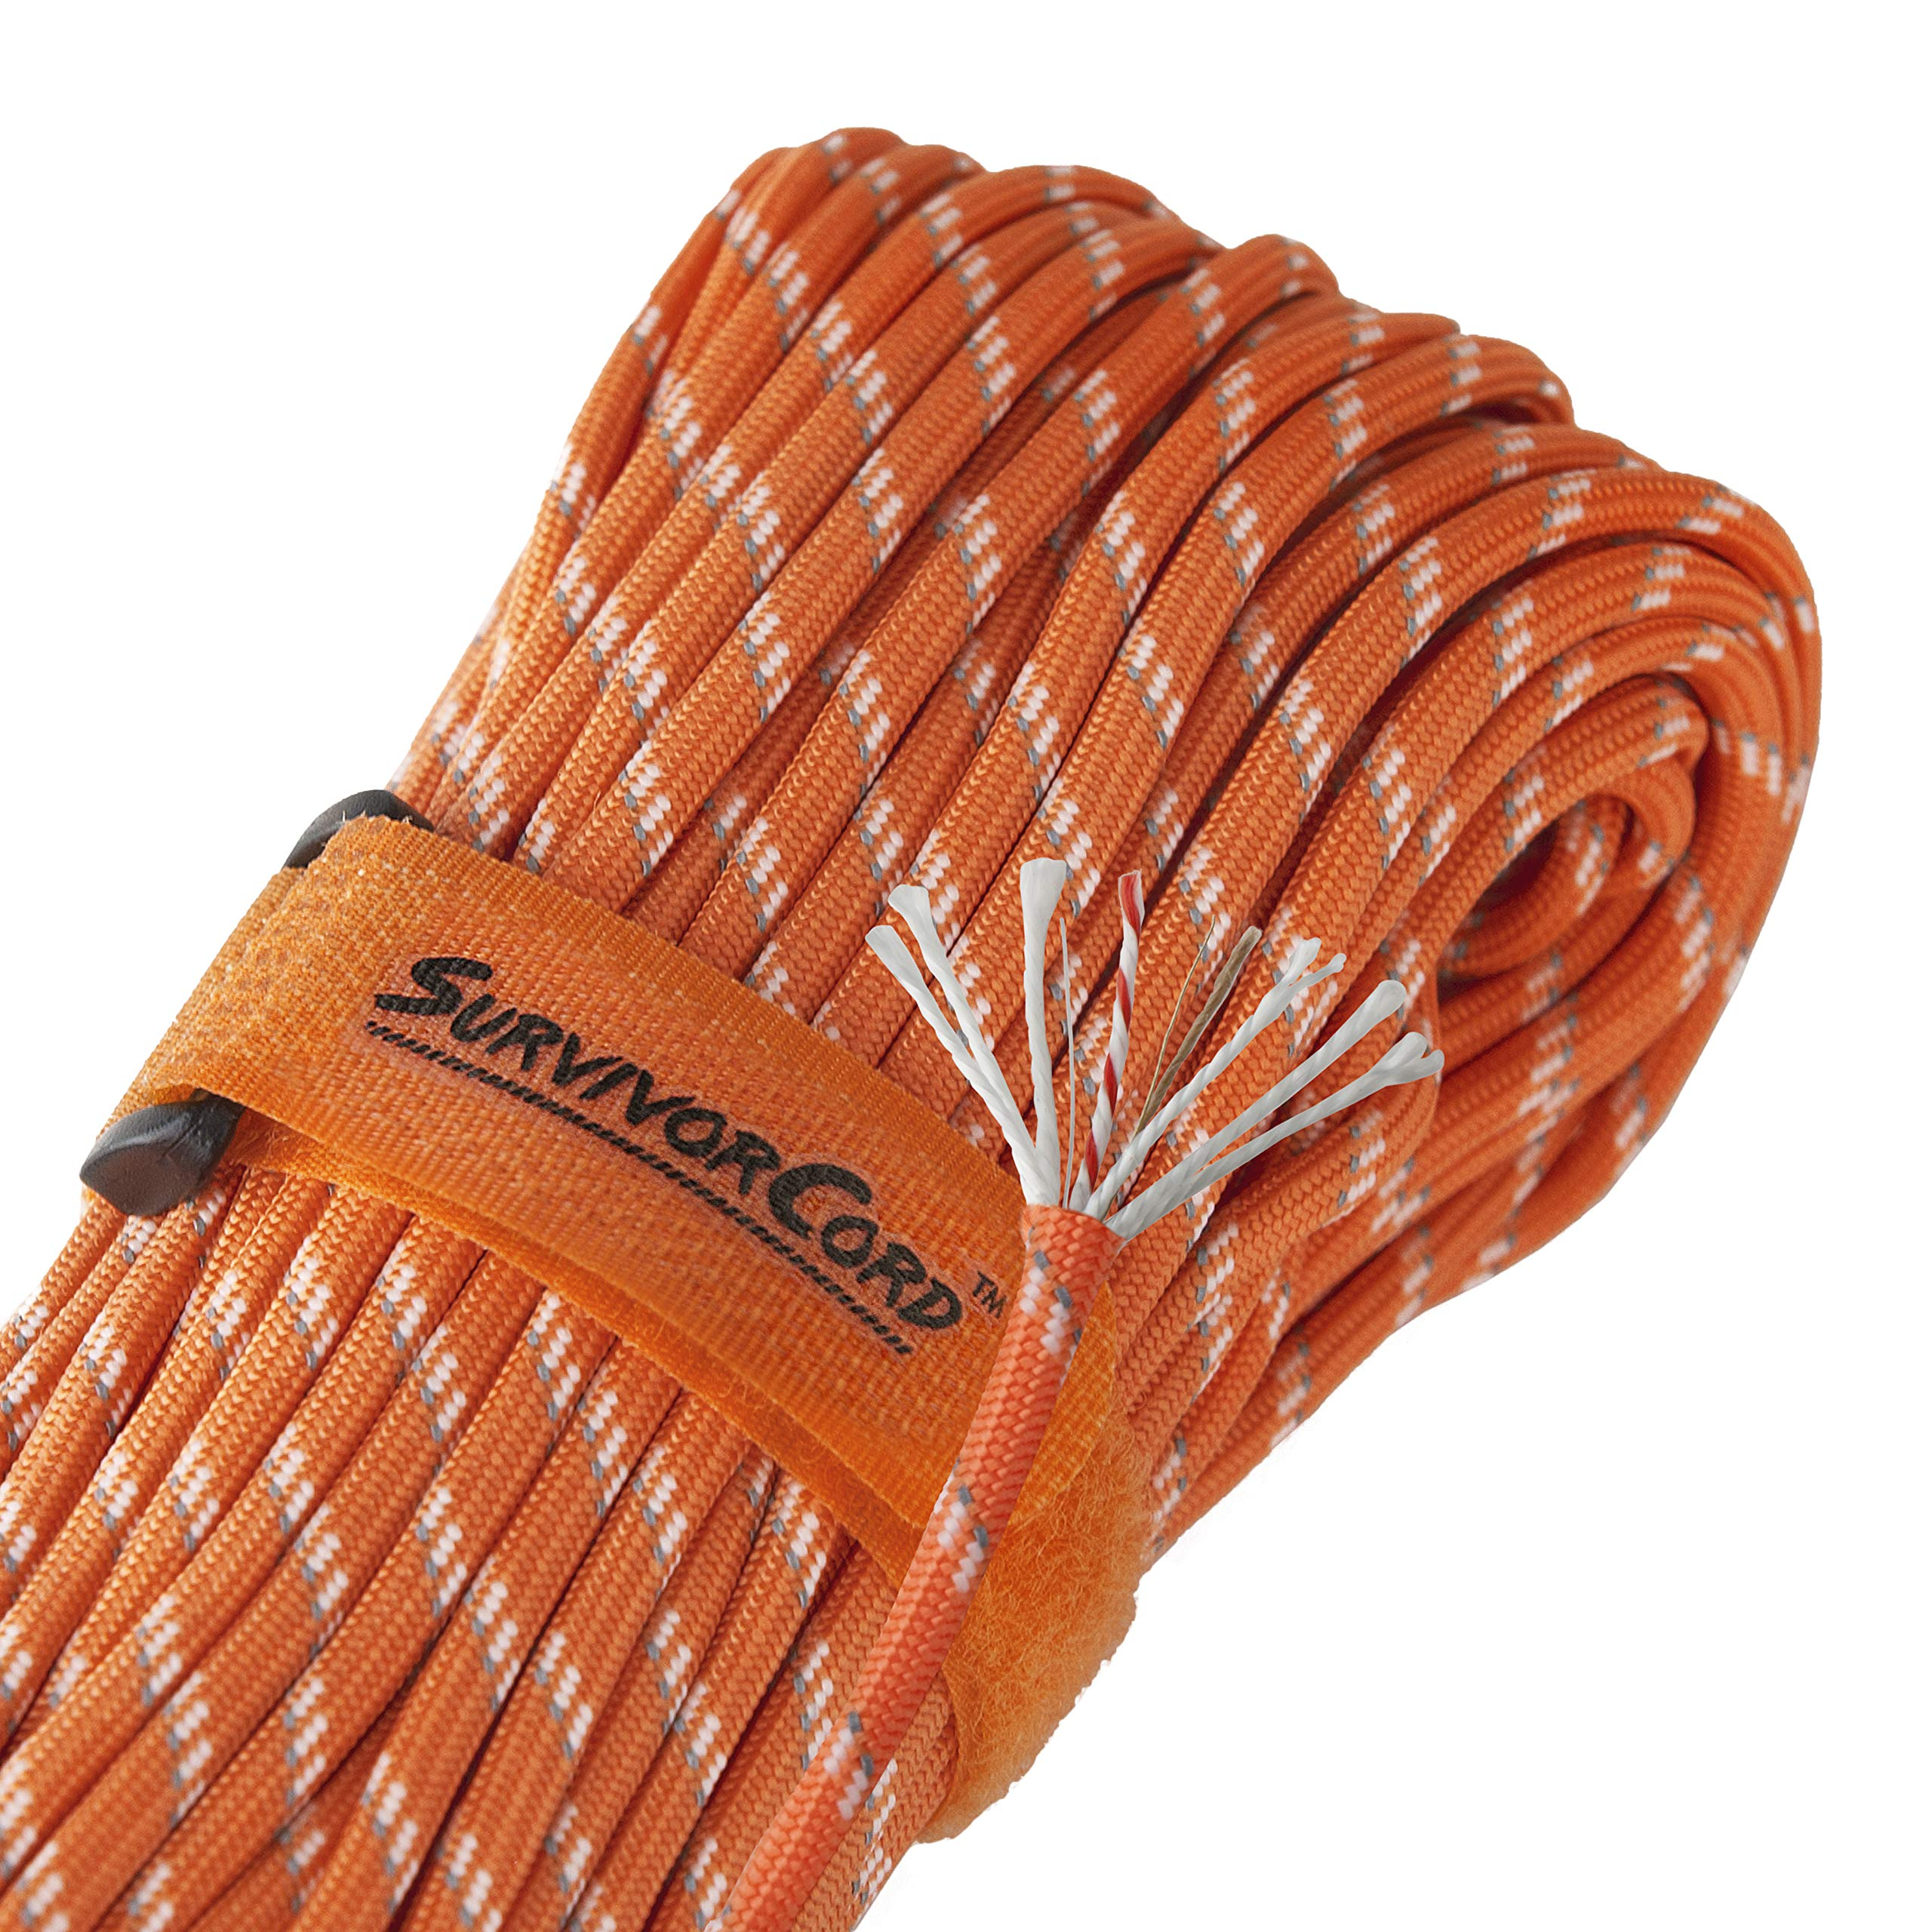 Titan SurvivorCord | Reflective Orange | 103 Feet | Patented Military Type III 550 Paracord/Parachute Cord (3/16'' Diameter) with Integrated Fishing Line, Fire-Starter, and Utility Wire. by Titan Paracord (Image #1)